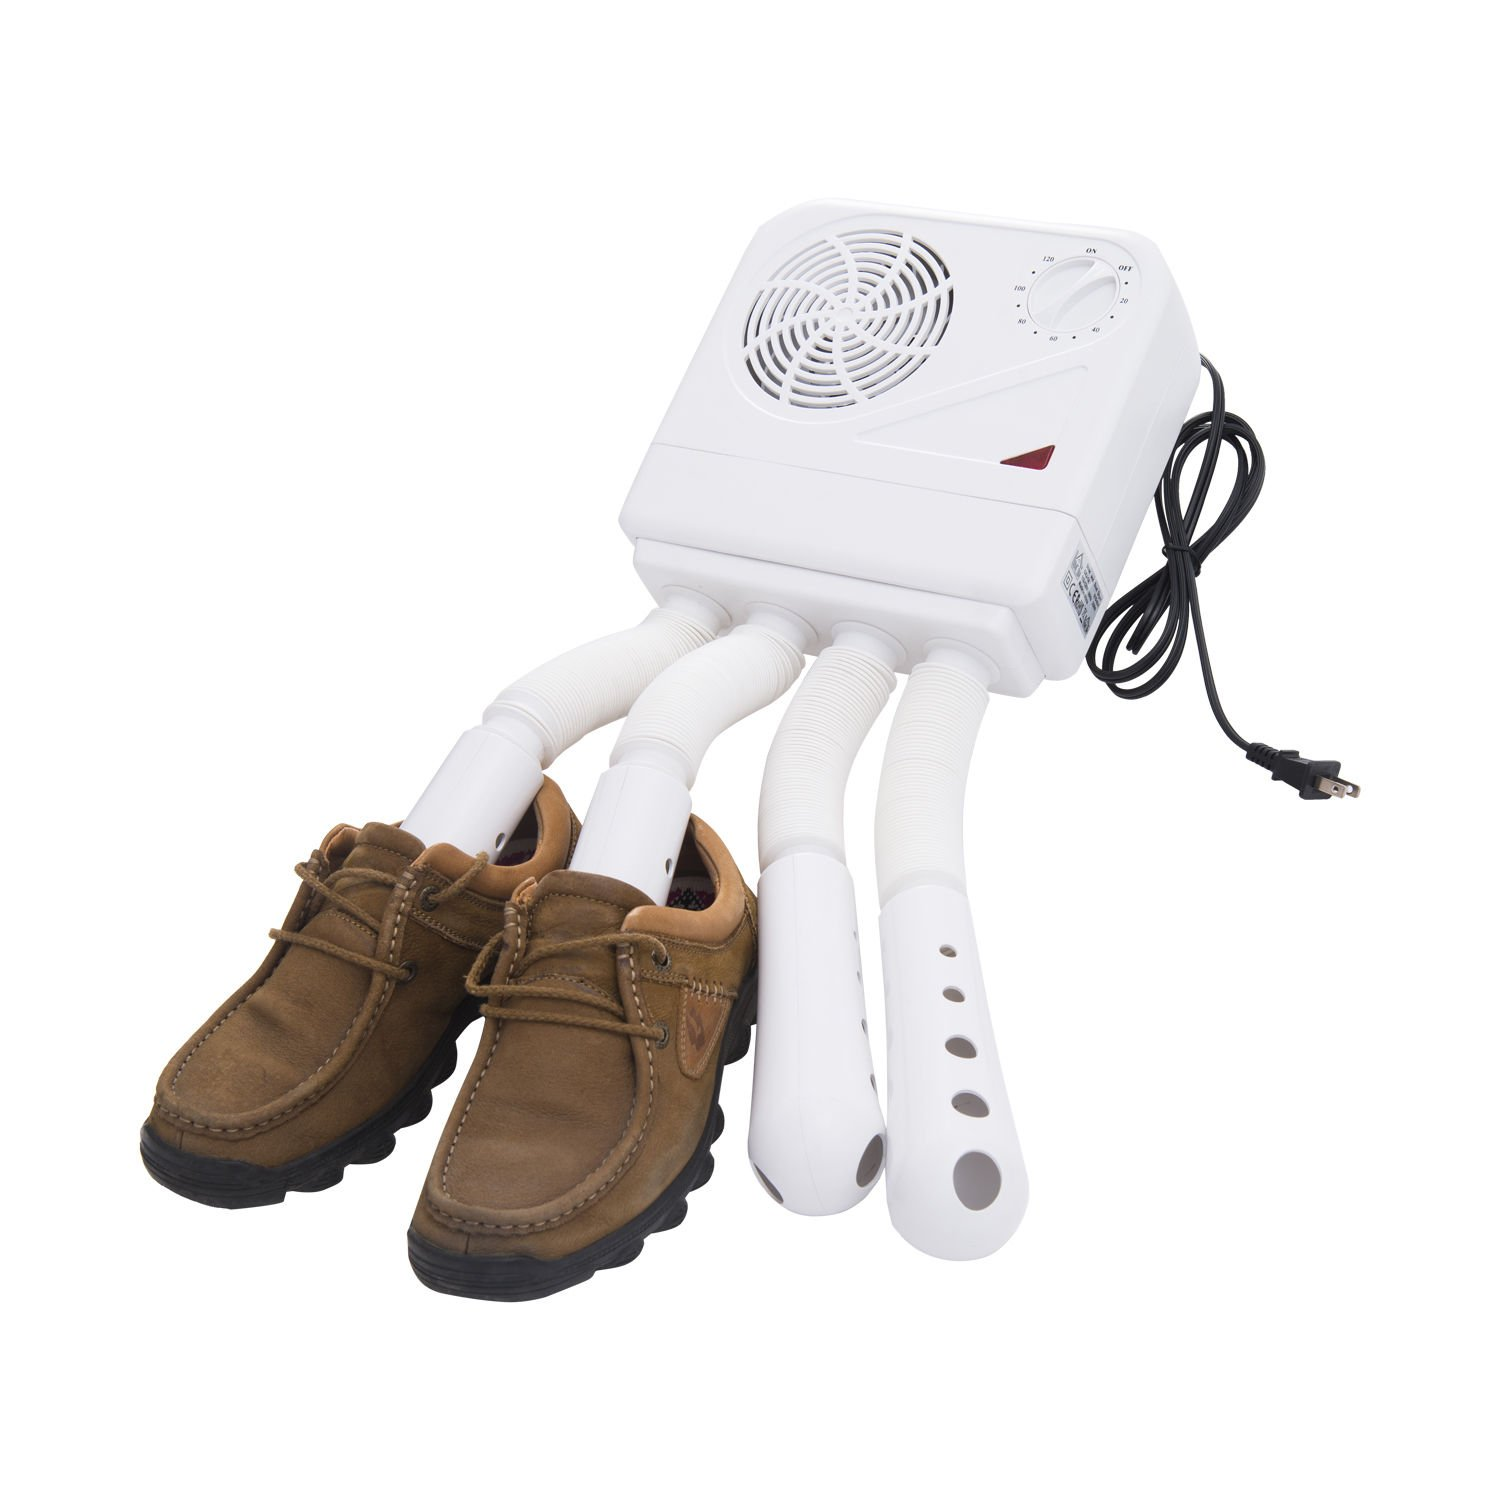 HOMCOM Electric 4 Port 2-Shoe Electric Boot Dryer Warmer Glove Heater With Temperature Control Timer